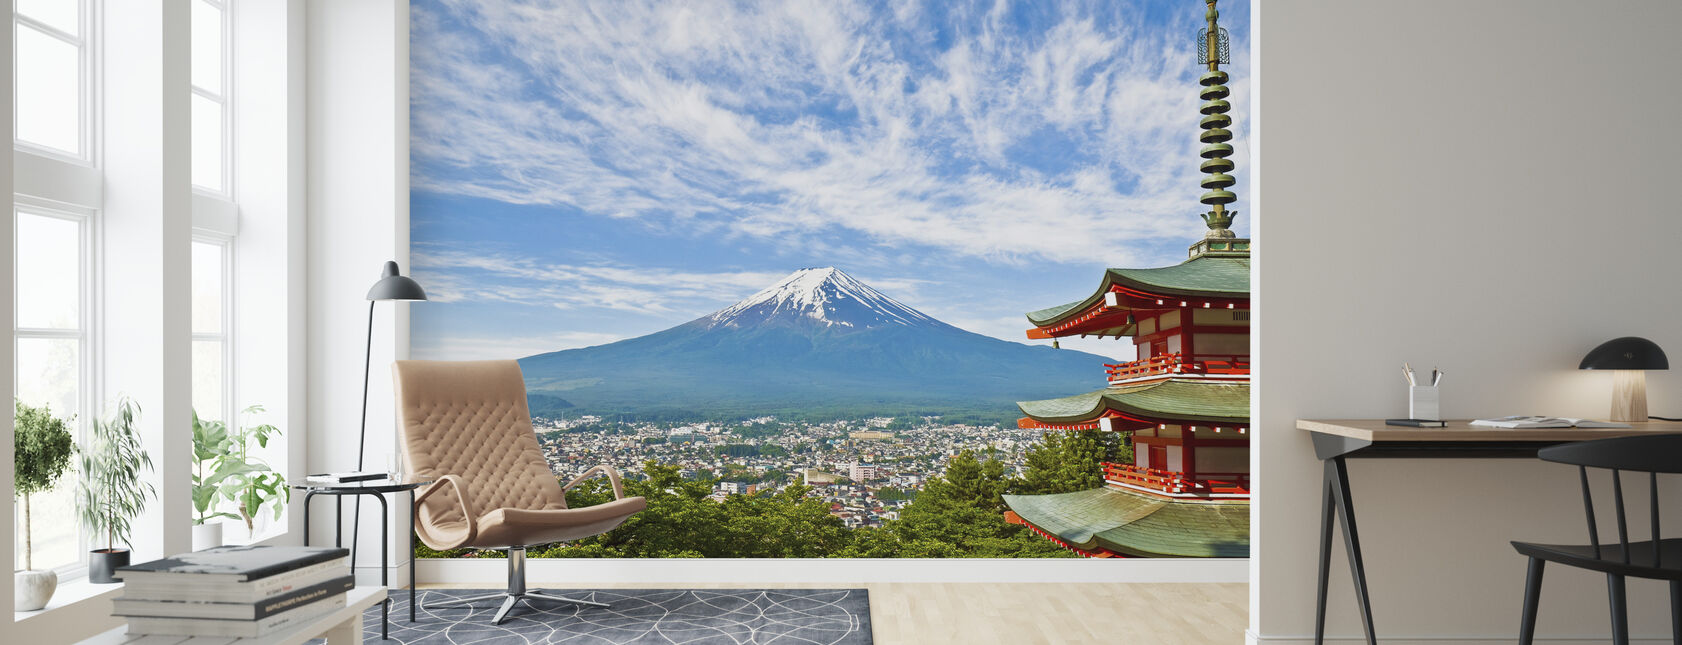 At the Foot of Mount Fuji - Wallpaper - Living Room